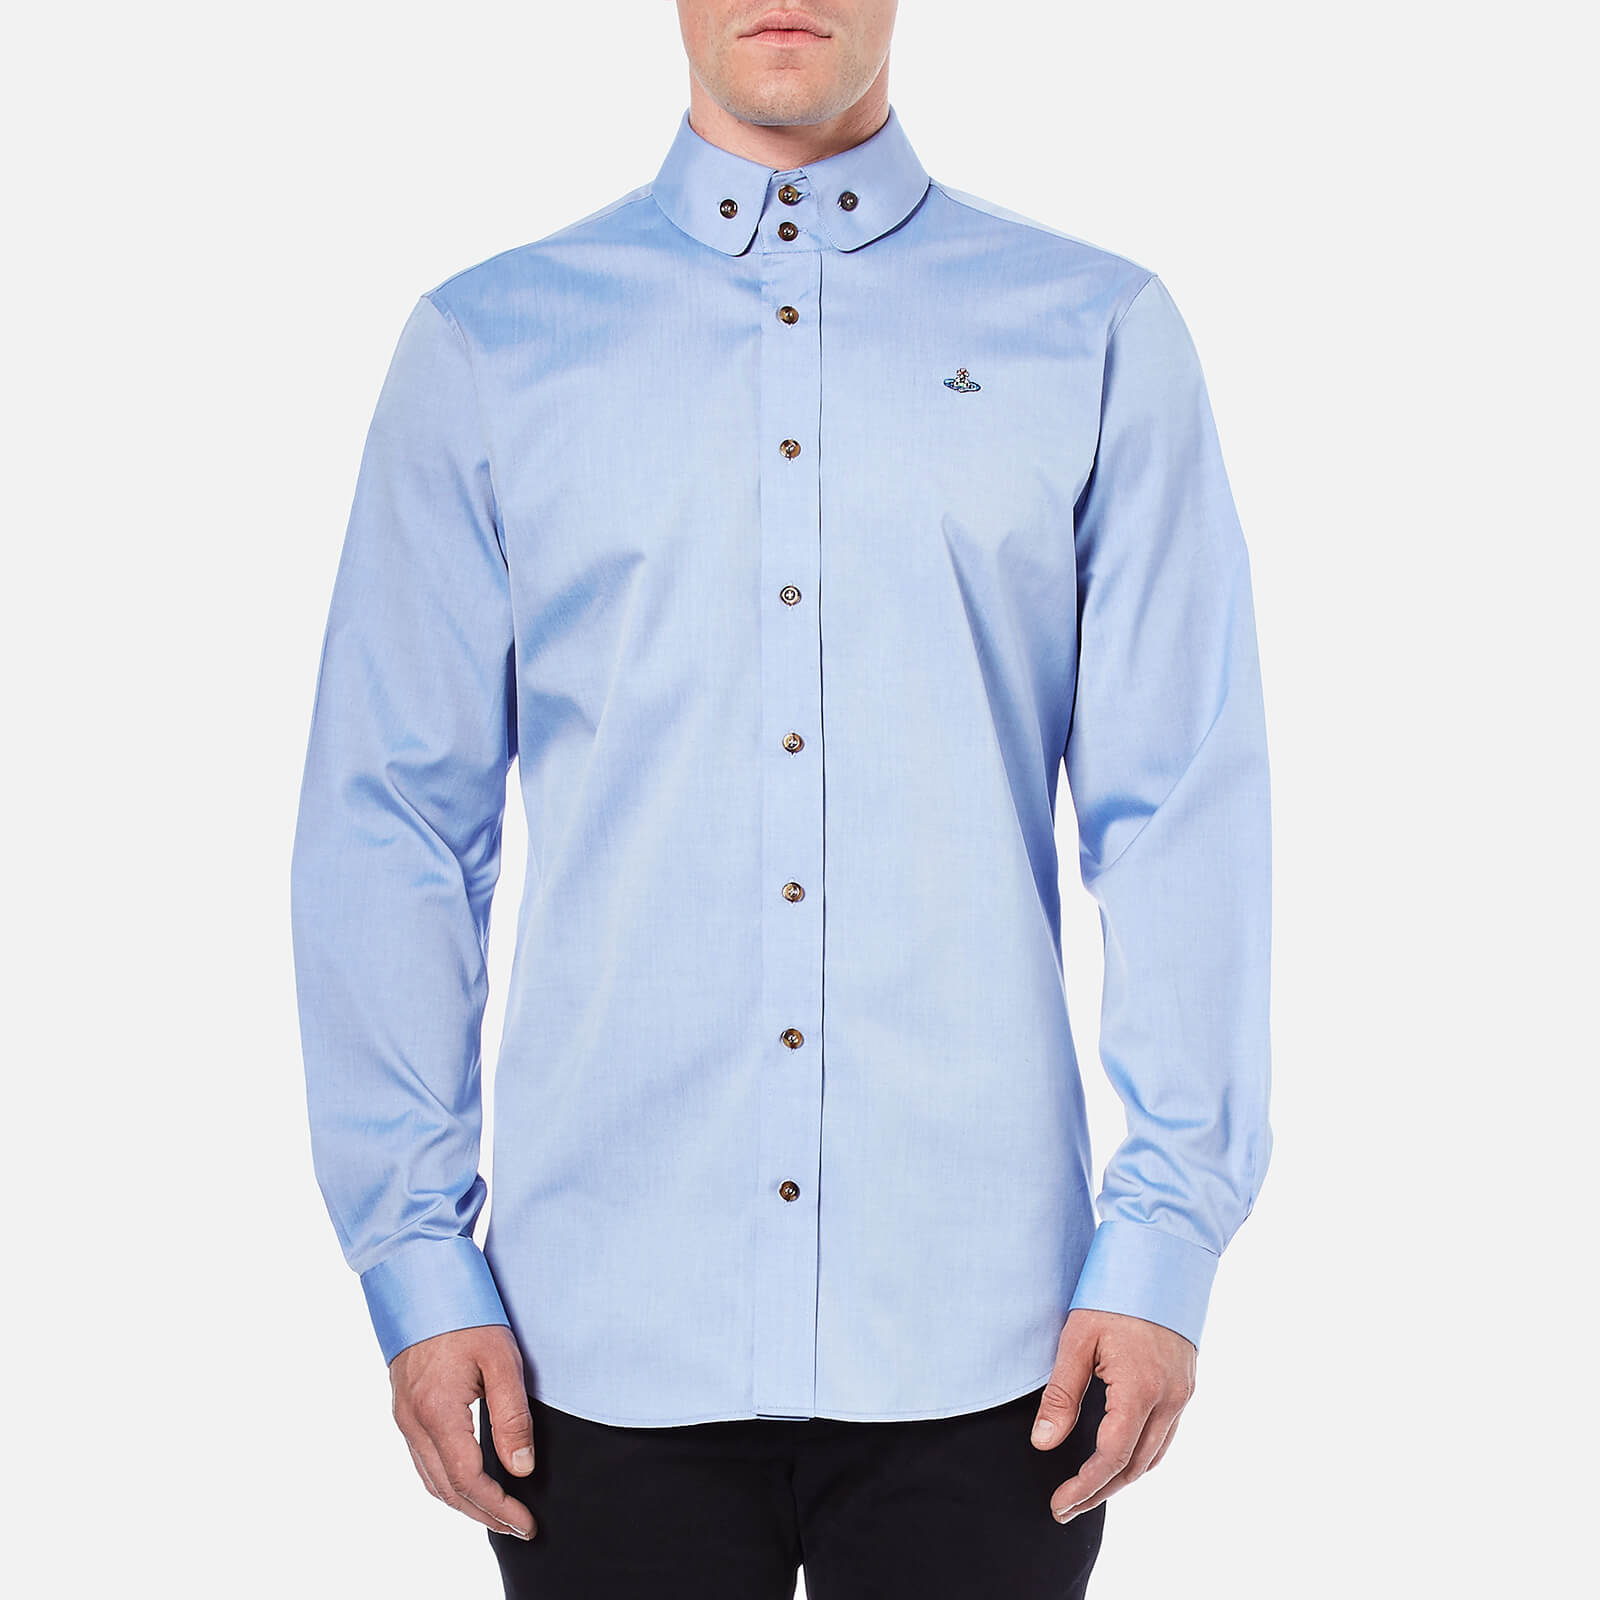 9c306a567af3d Vivienne Westwood MAN Men s Classic Oxford Krall Long Sleeve Shirt - Blue -  Free UK Delivery over £50